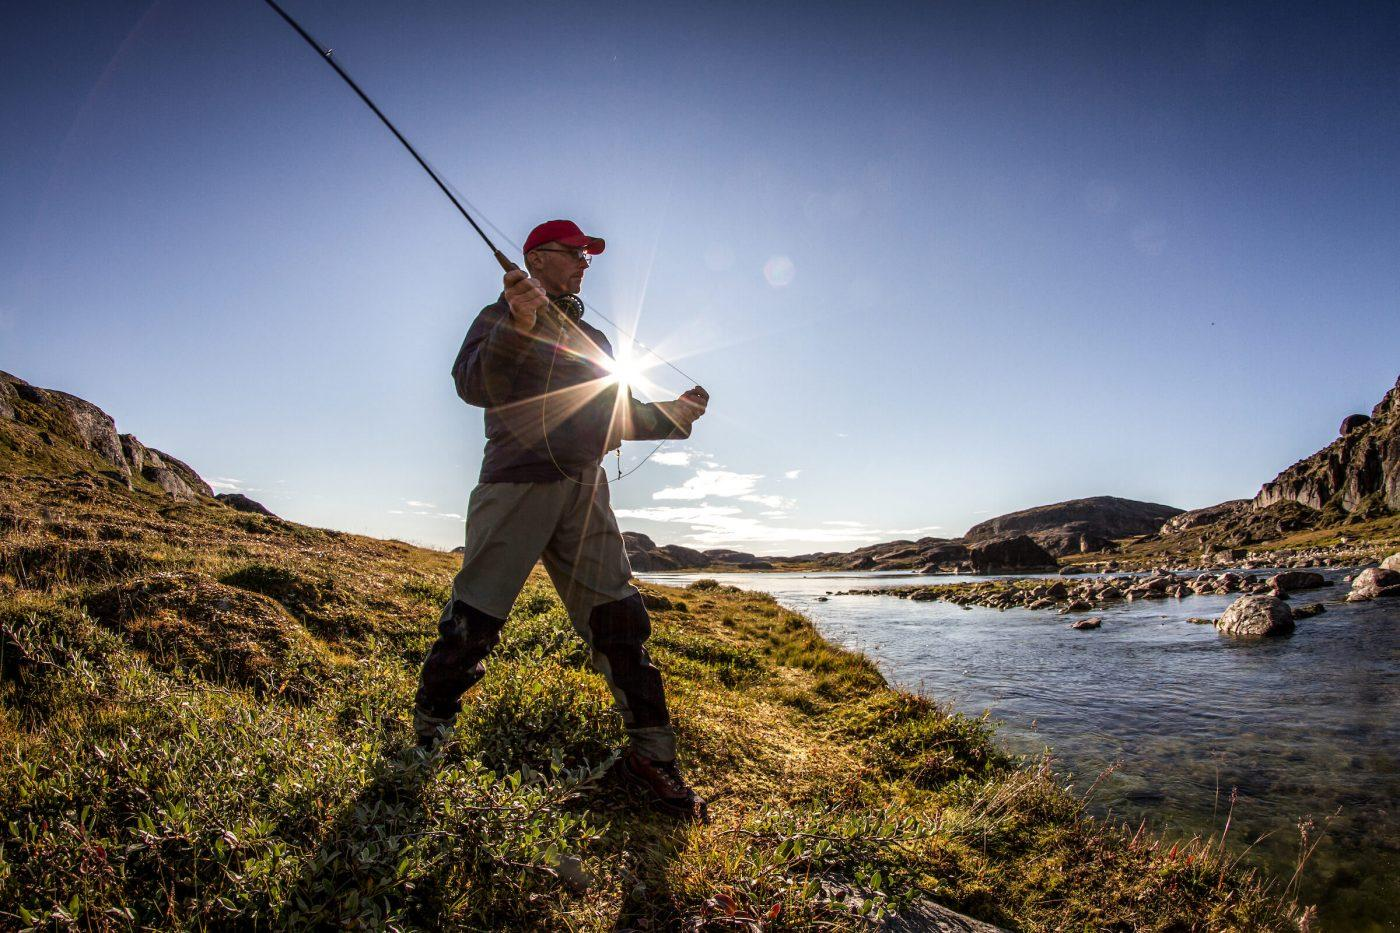 Fly fishing at Erfalik river in Greenland. By Mads Pihl